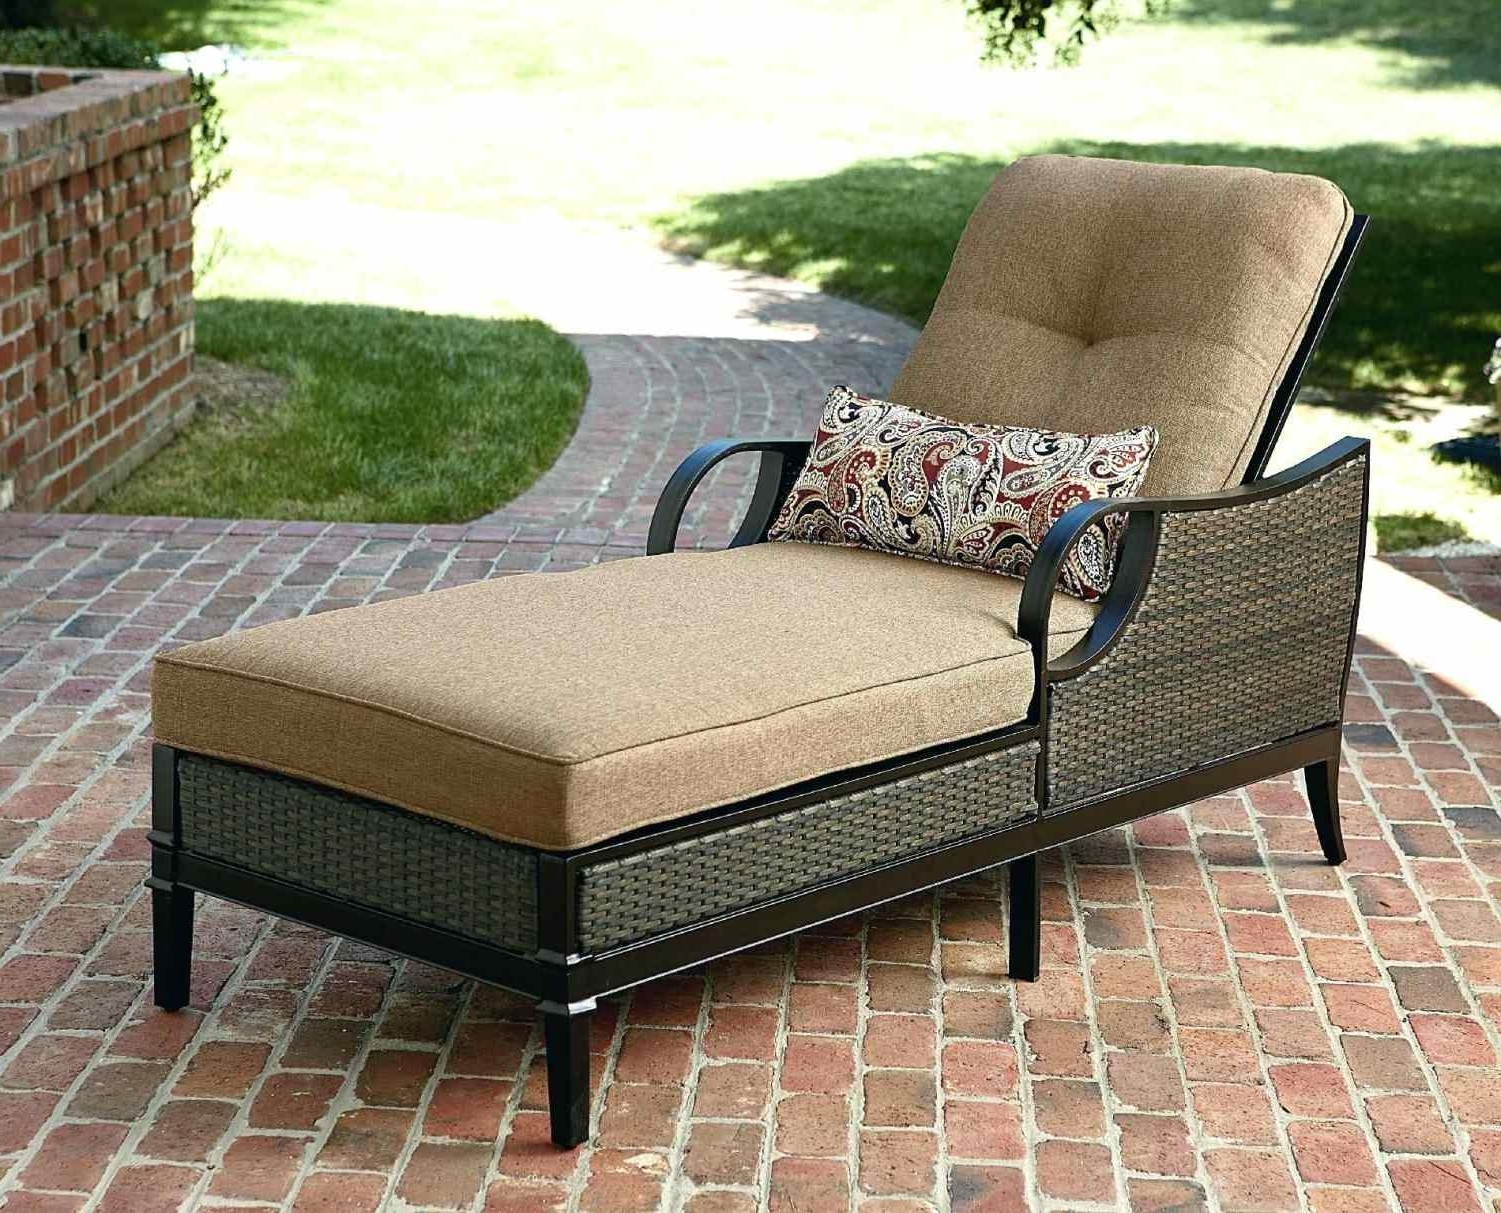 Chaise Outdoor Lounge Chairs Within Most Up To Date Lounge Chair : Cushion Sets Wicker Furniture Chaise Lowes S Wicker (View 3 of 15)